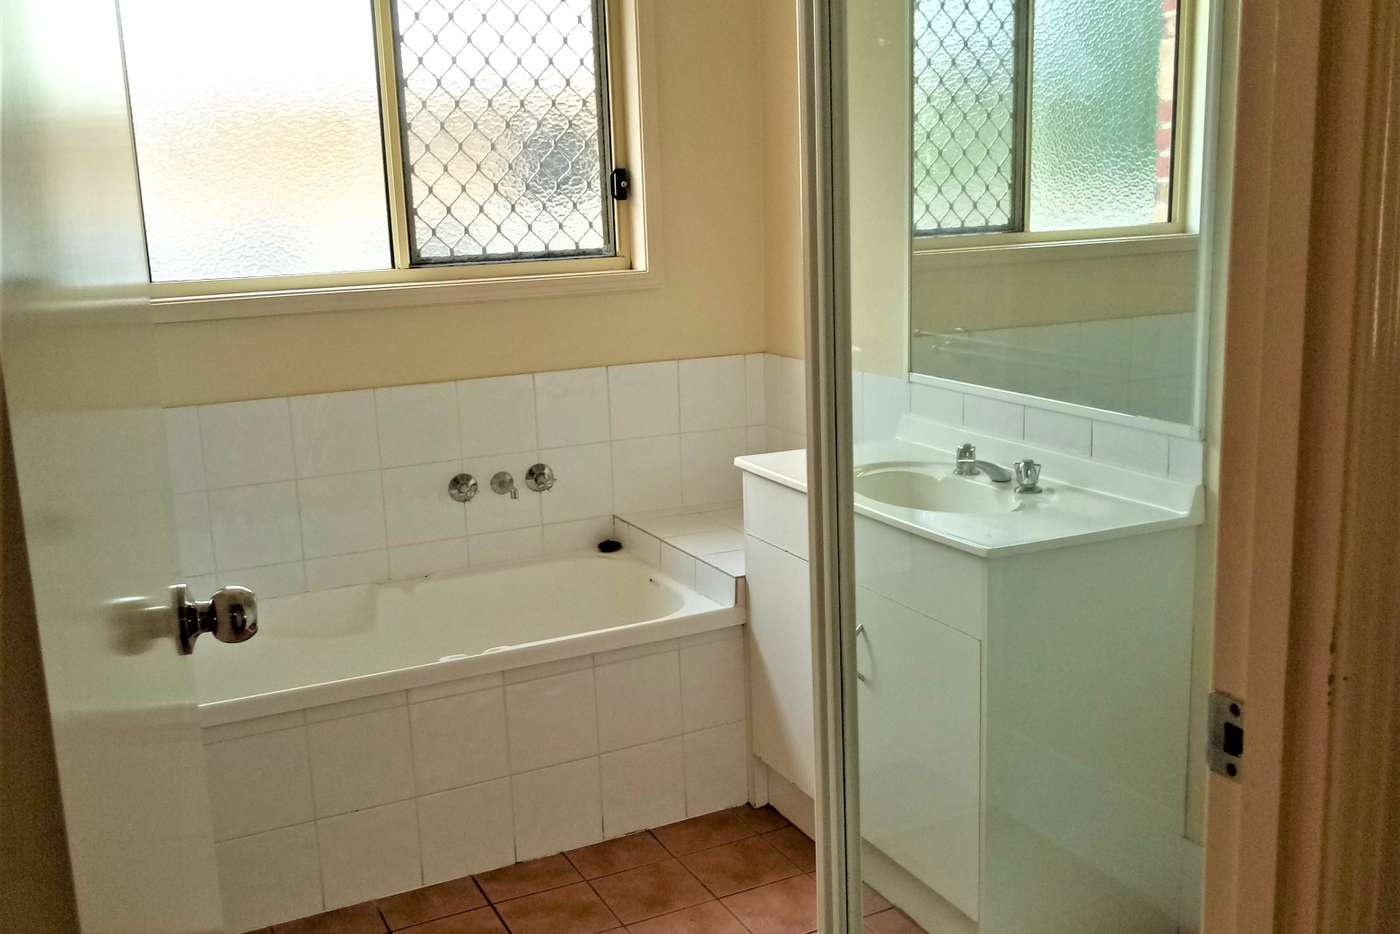 Seventh view of Homely house listing, 5 Ingles Drive, Redbank Plains QLD 4301